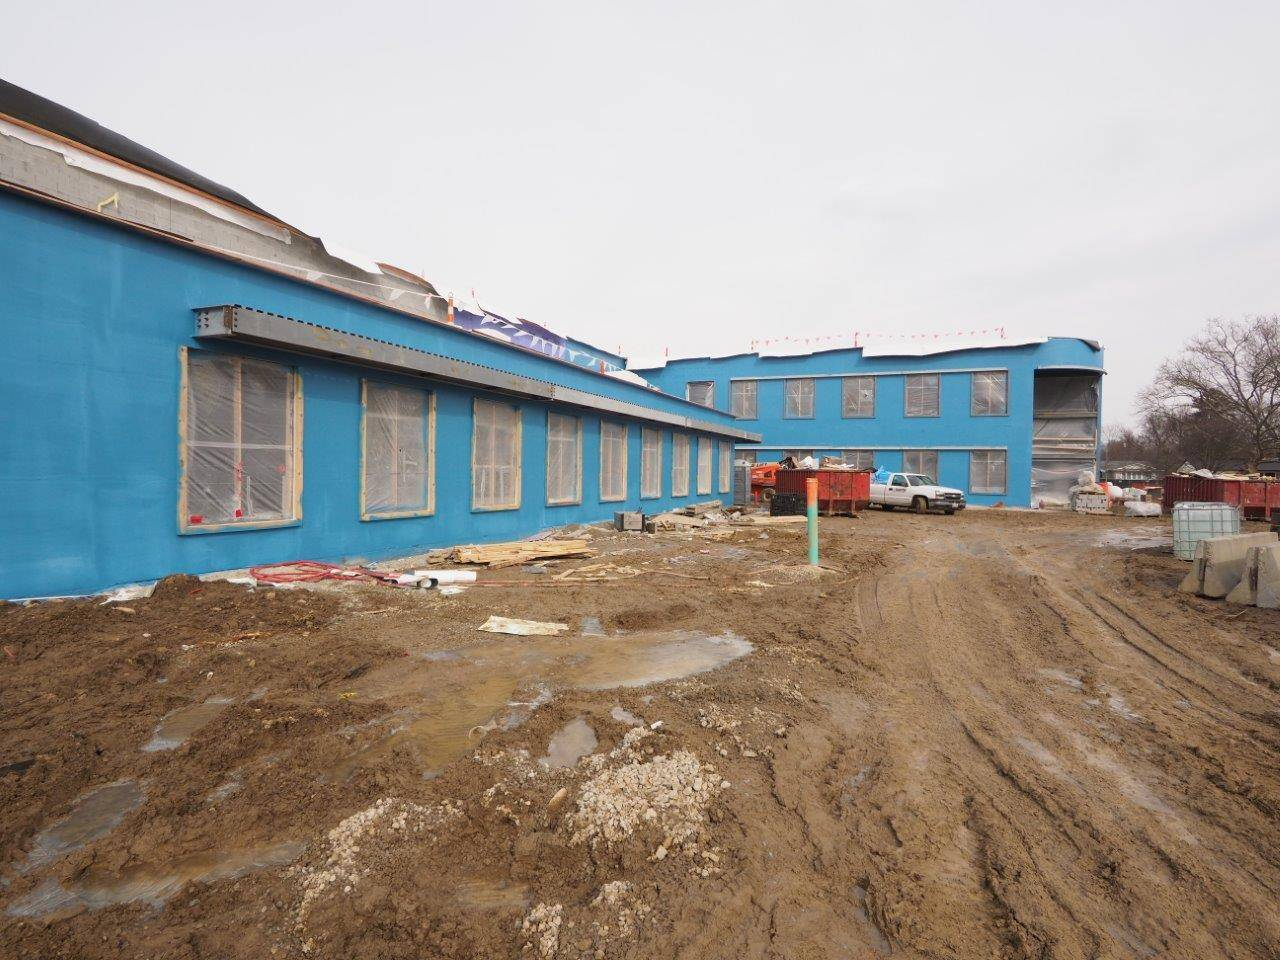 An exterior view of the new Windermere Elementary School